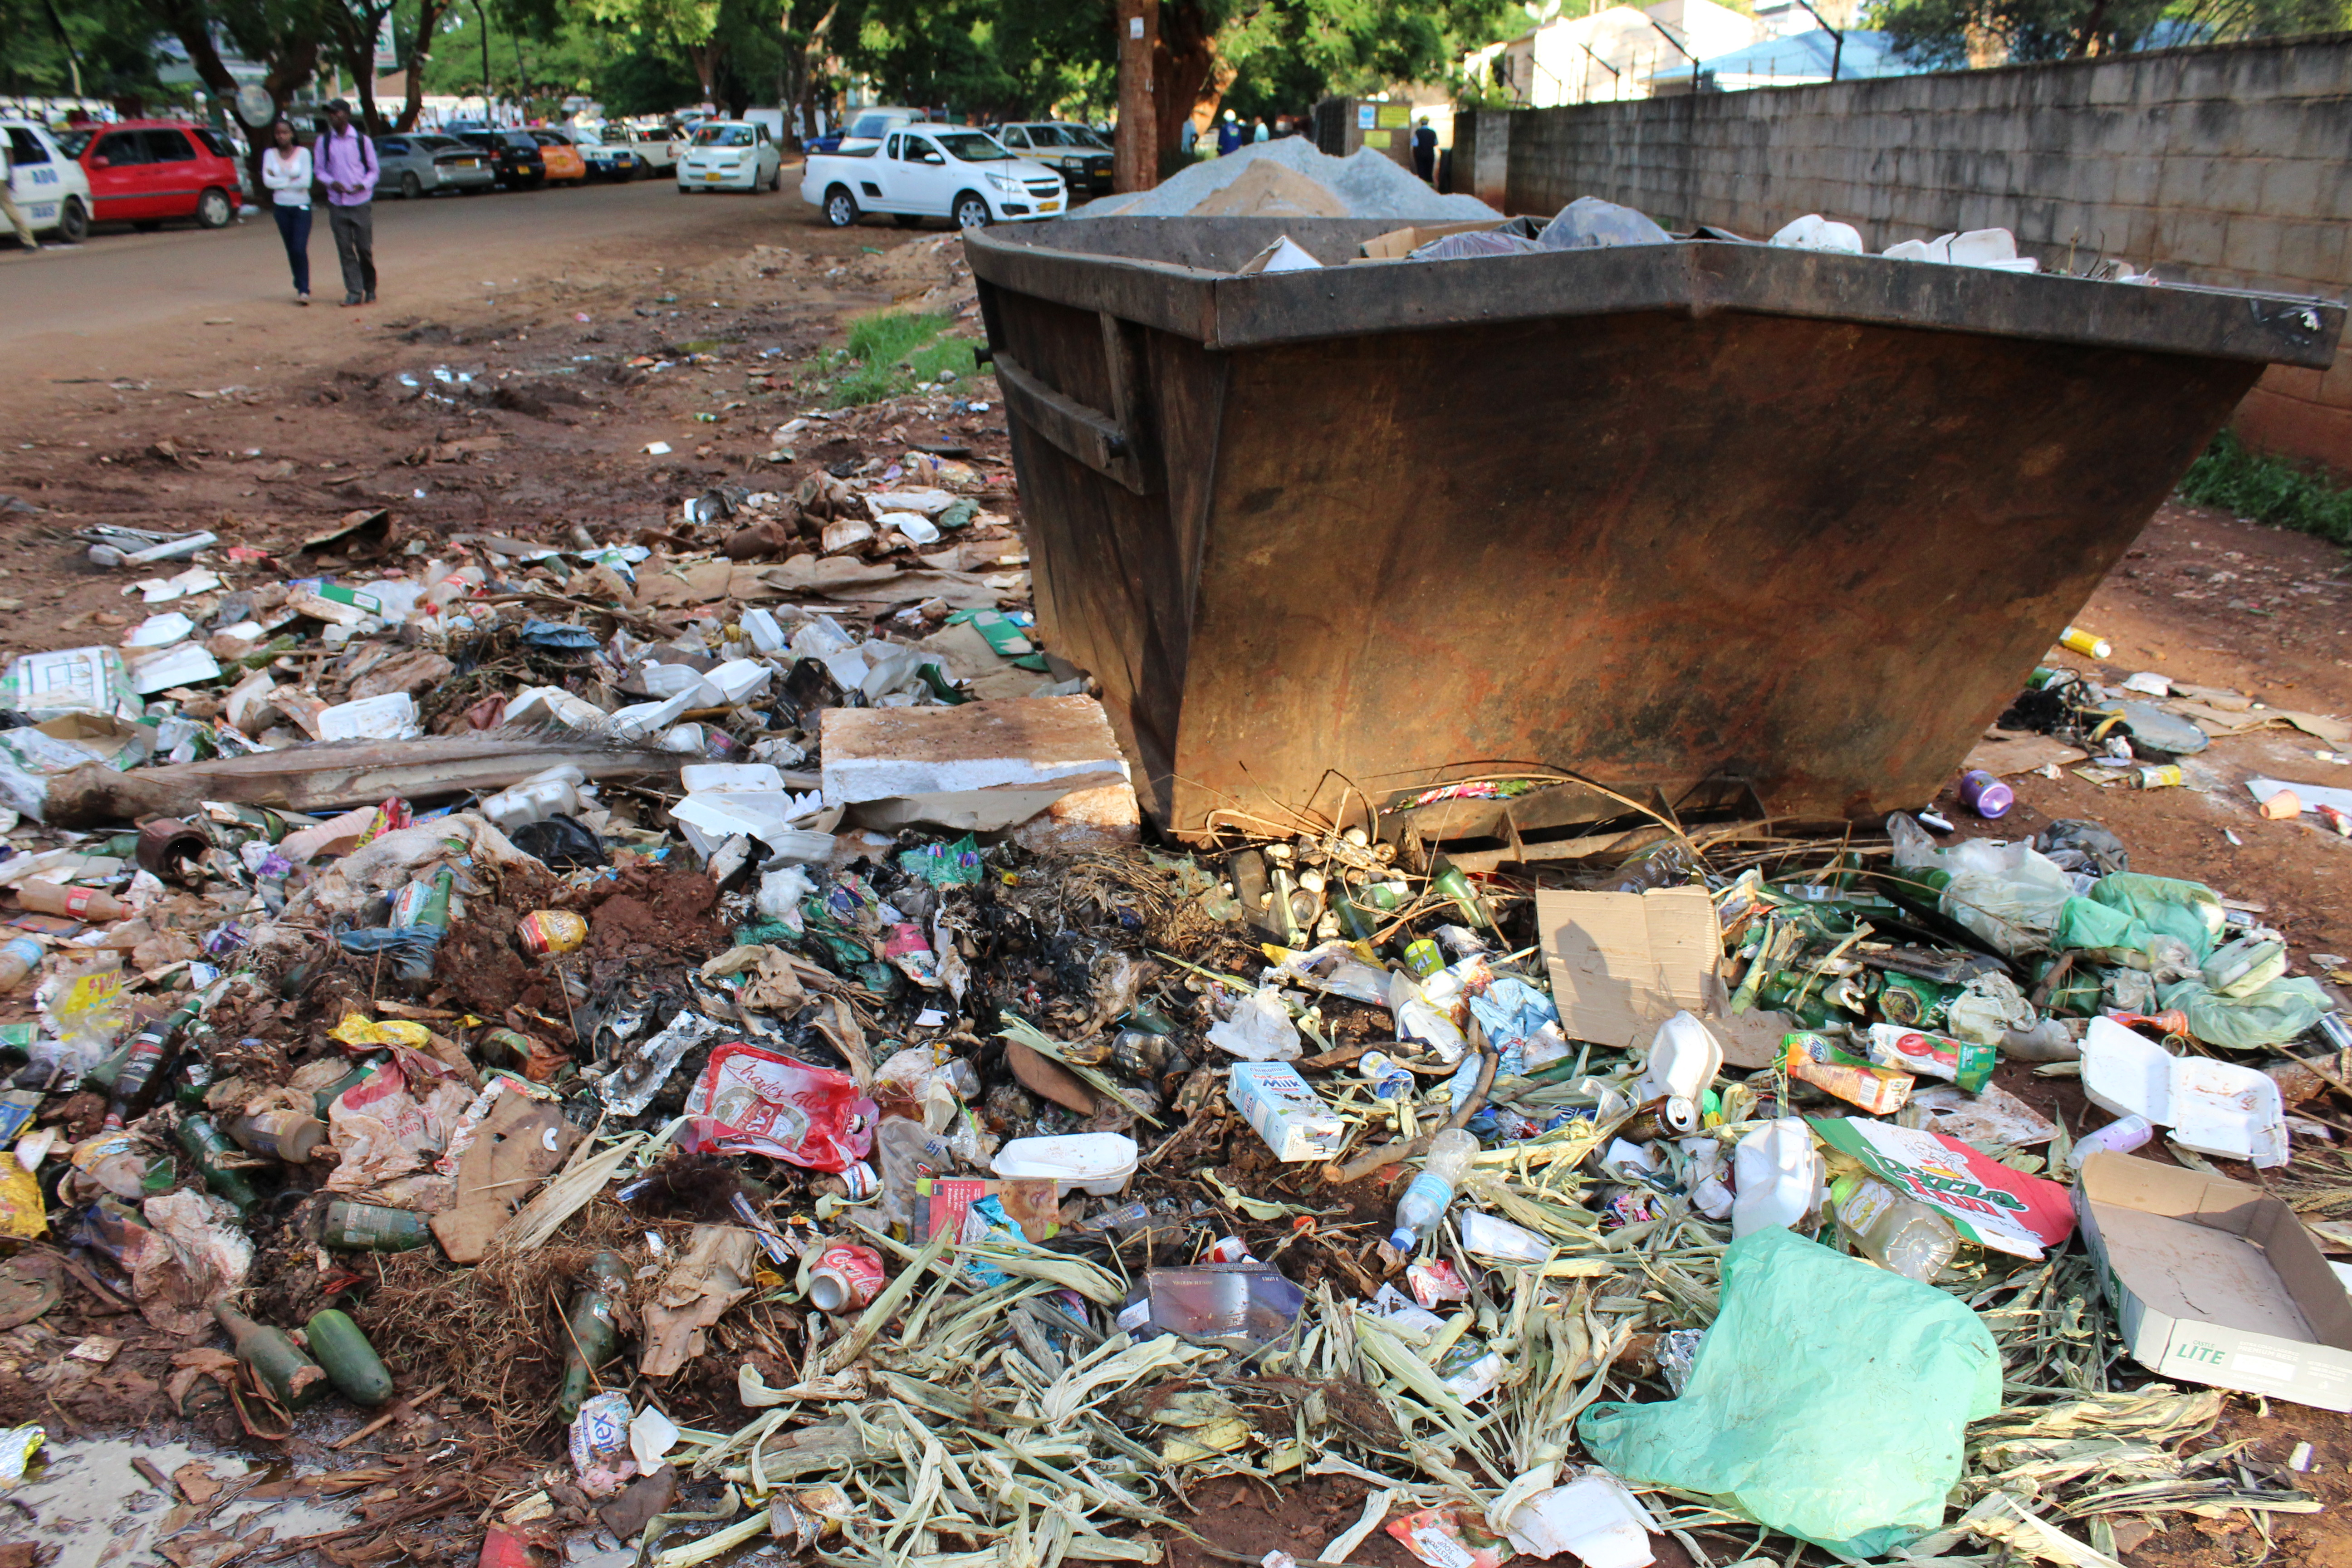 """In Mbare township, the """"epicentre"""" of the current typhoid outbreak, sewer water flows and refuse has gone for days without being collected, Harare, Zimbabwe, Jan. 5, 2017. (S.Mhofu/VOA)"""